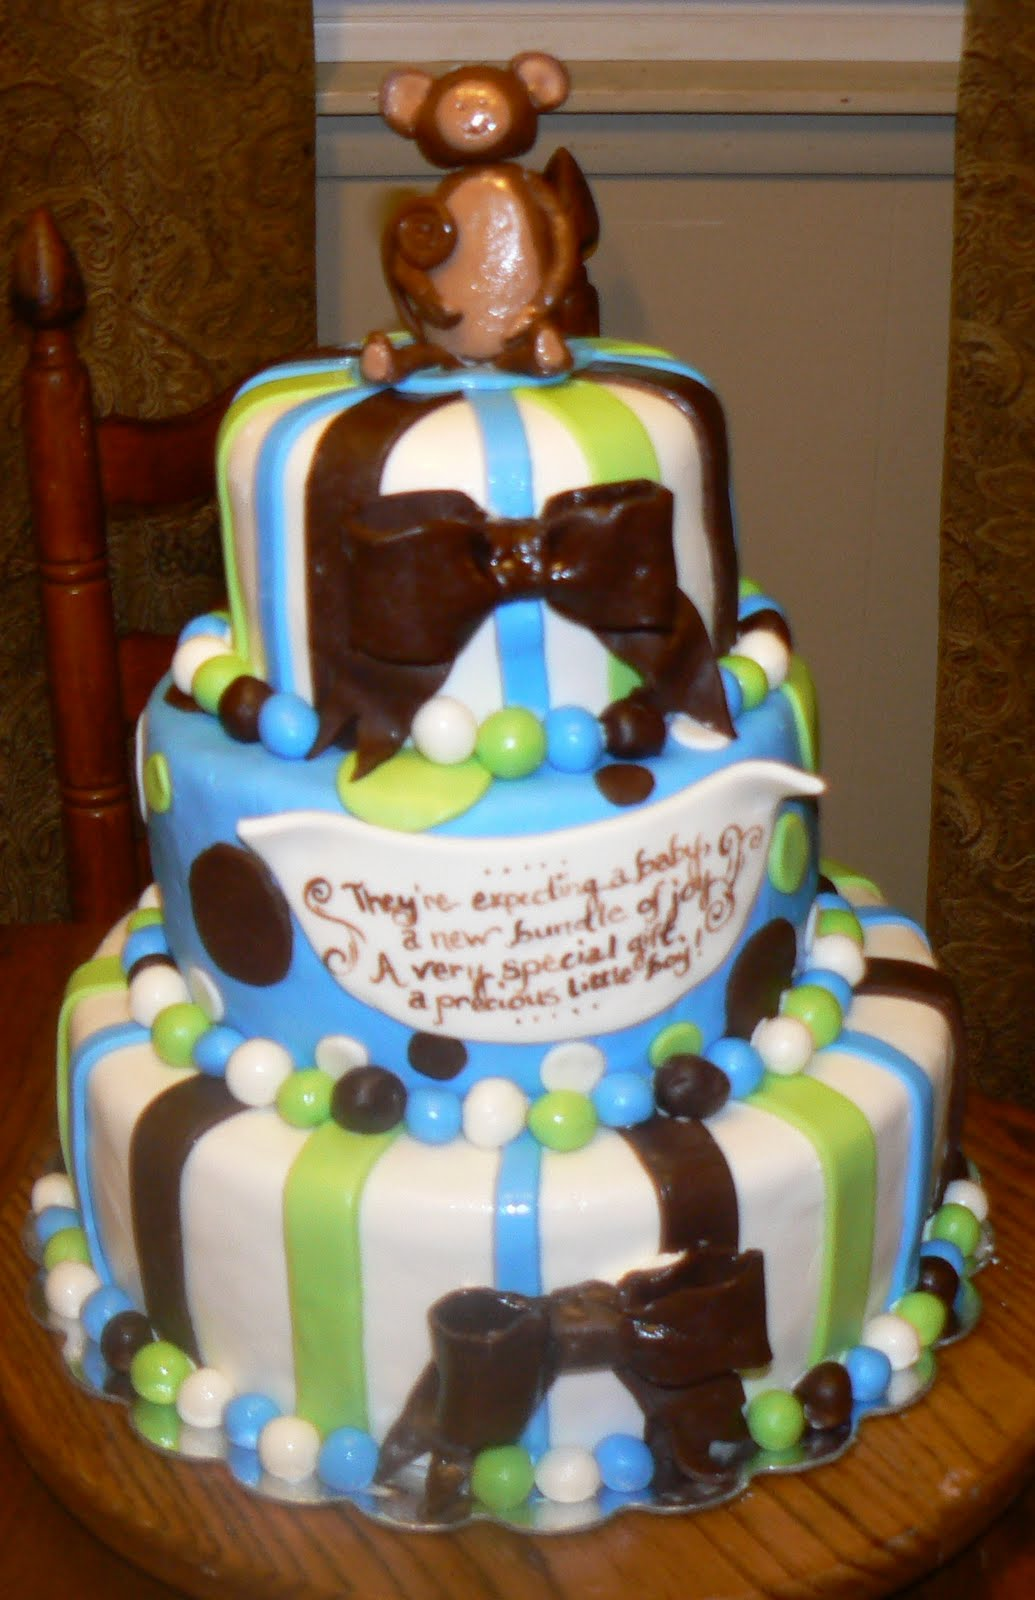 Kelly roberts designs baby shower and birthday cake - Baby shower cakes monkey theme ...